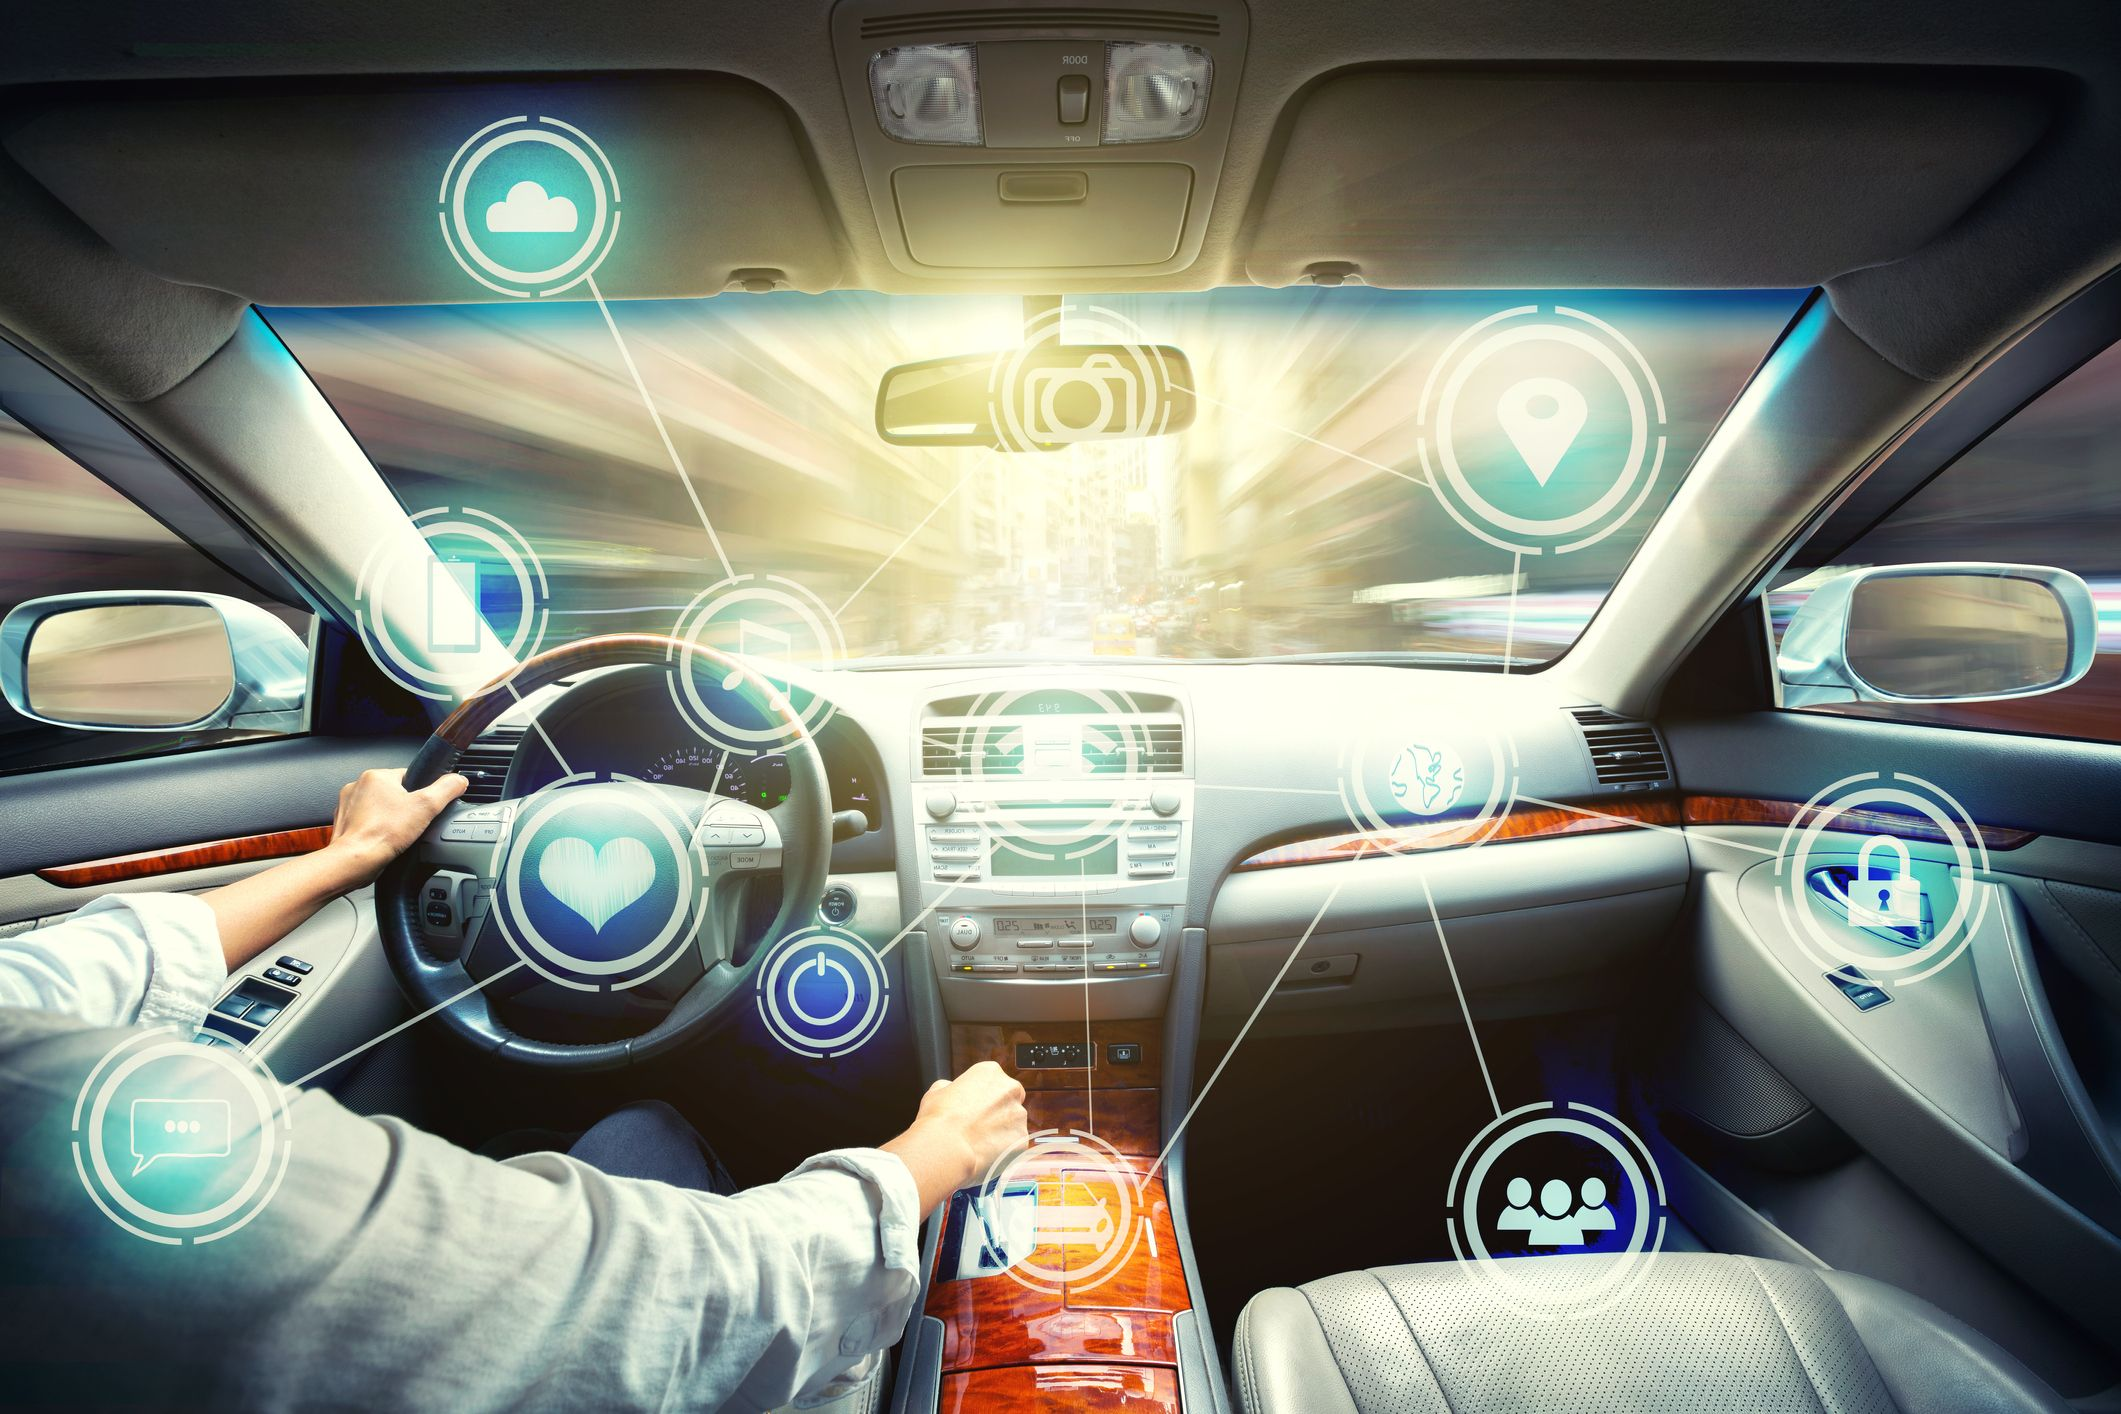 Intelligent vehicle cockpit and wireless royalty free image 1571770699